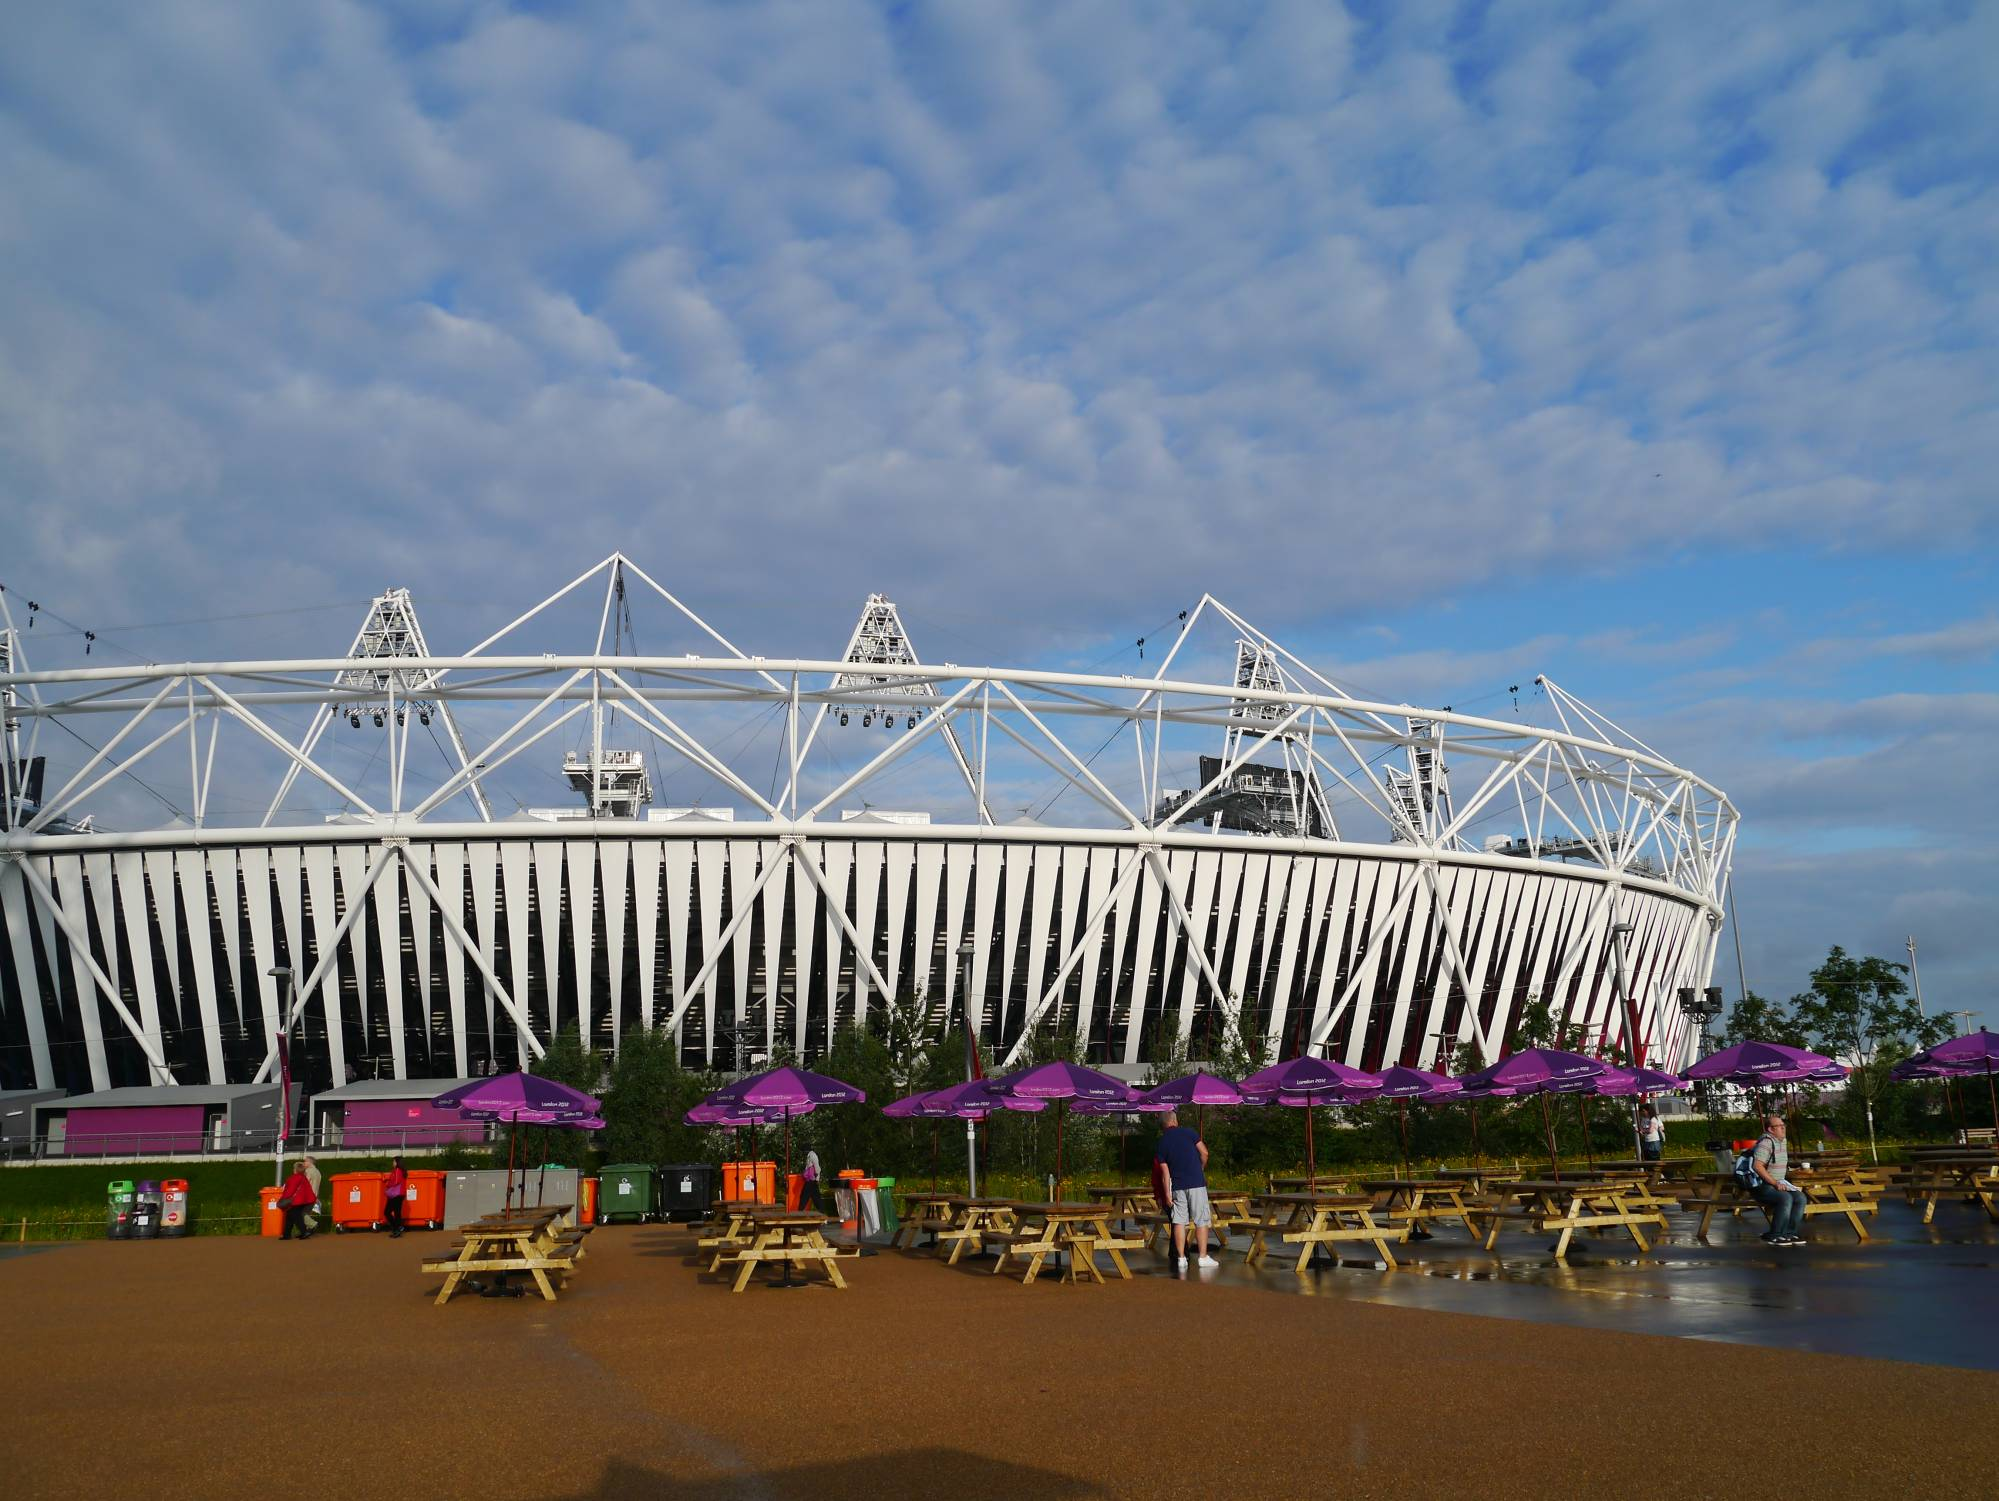 Explore the London Olympics venues from a Disney fans point of view | PassPorter.com